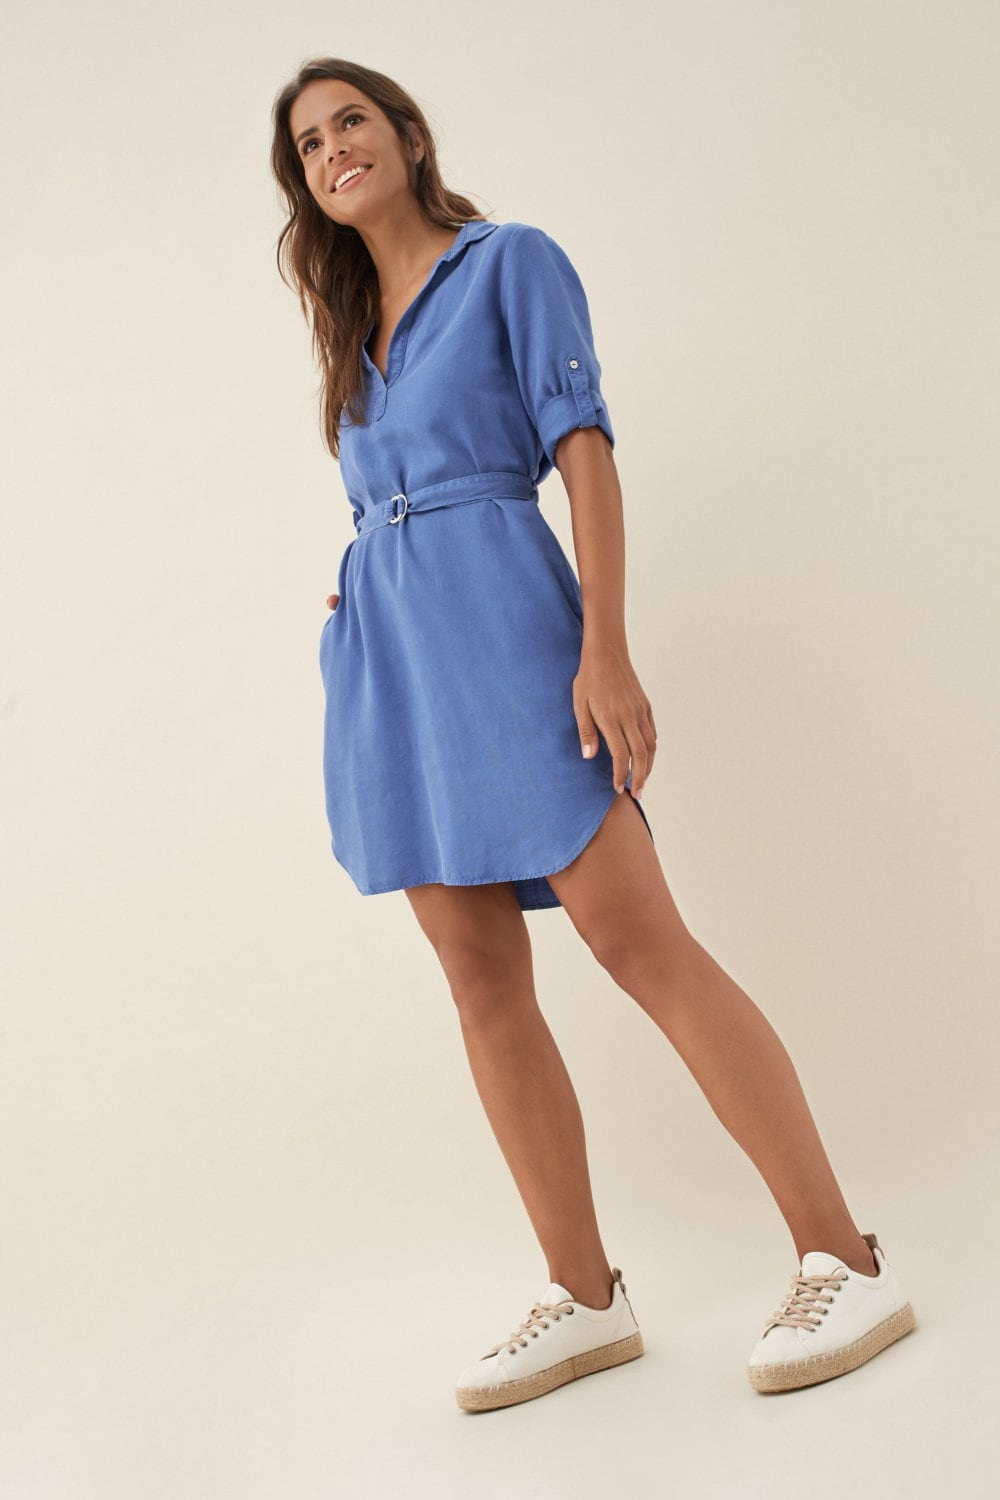 Shirt dress - Salsa